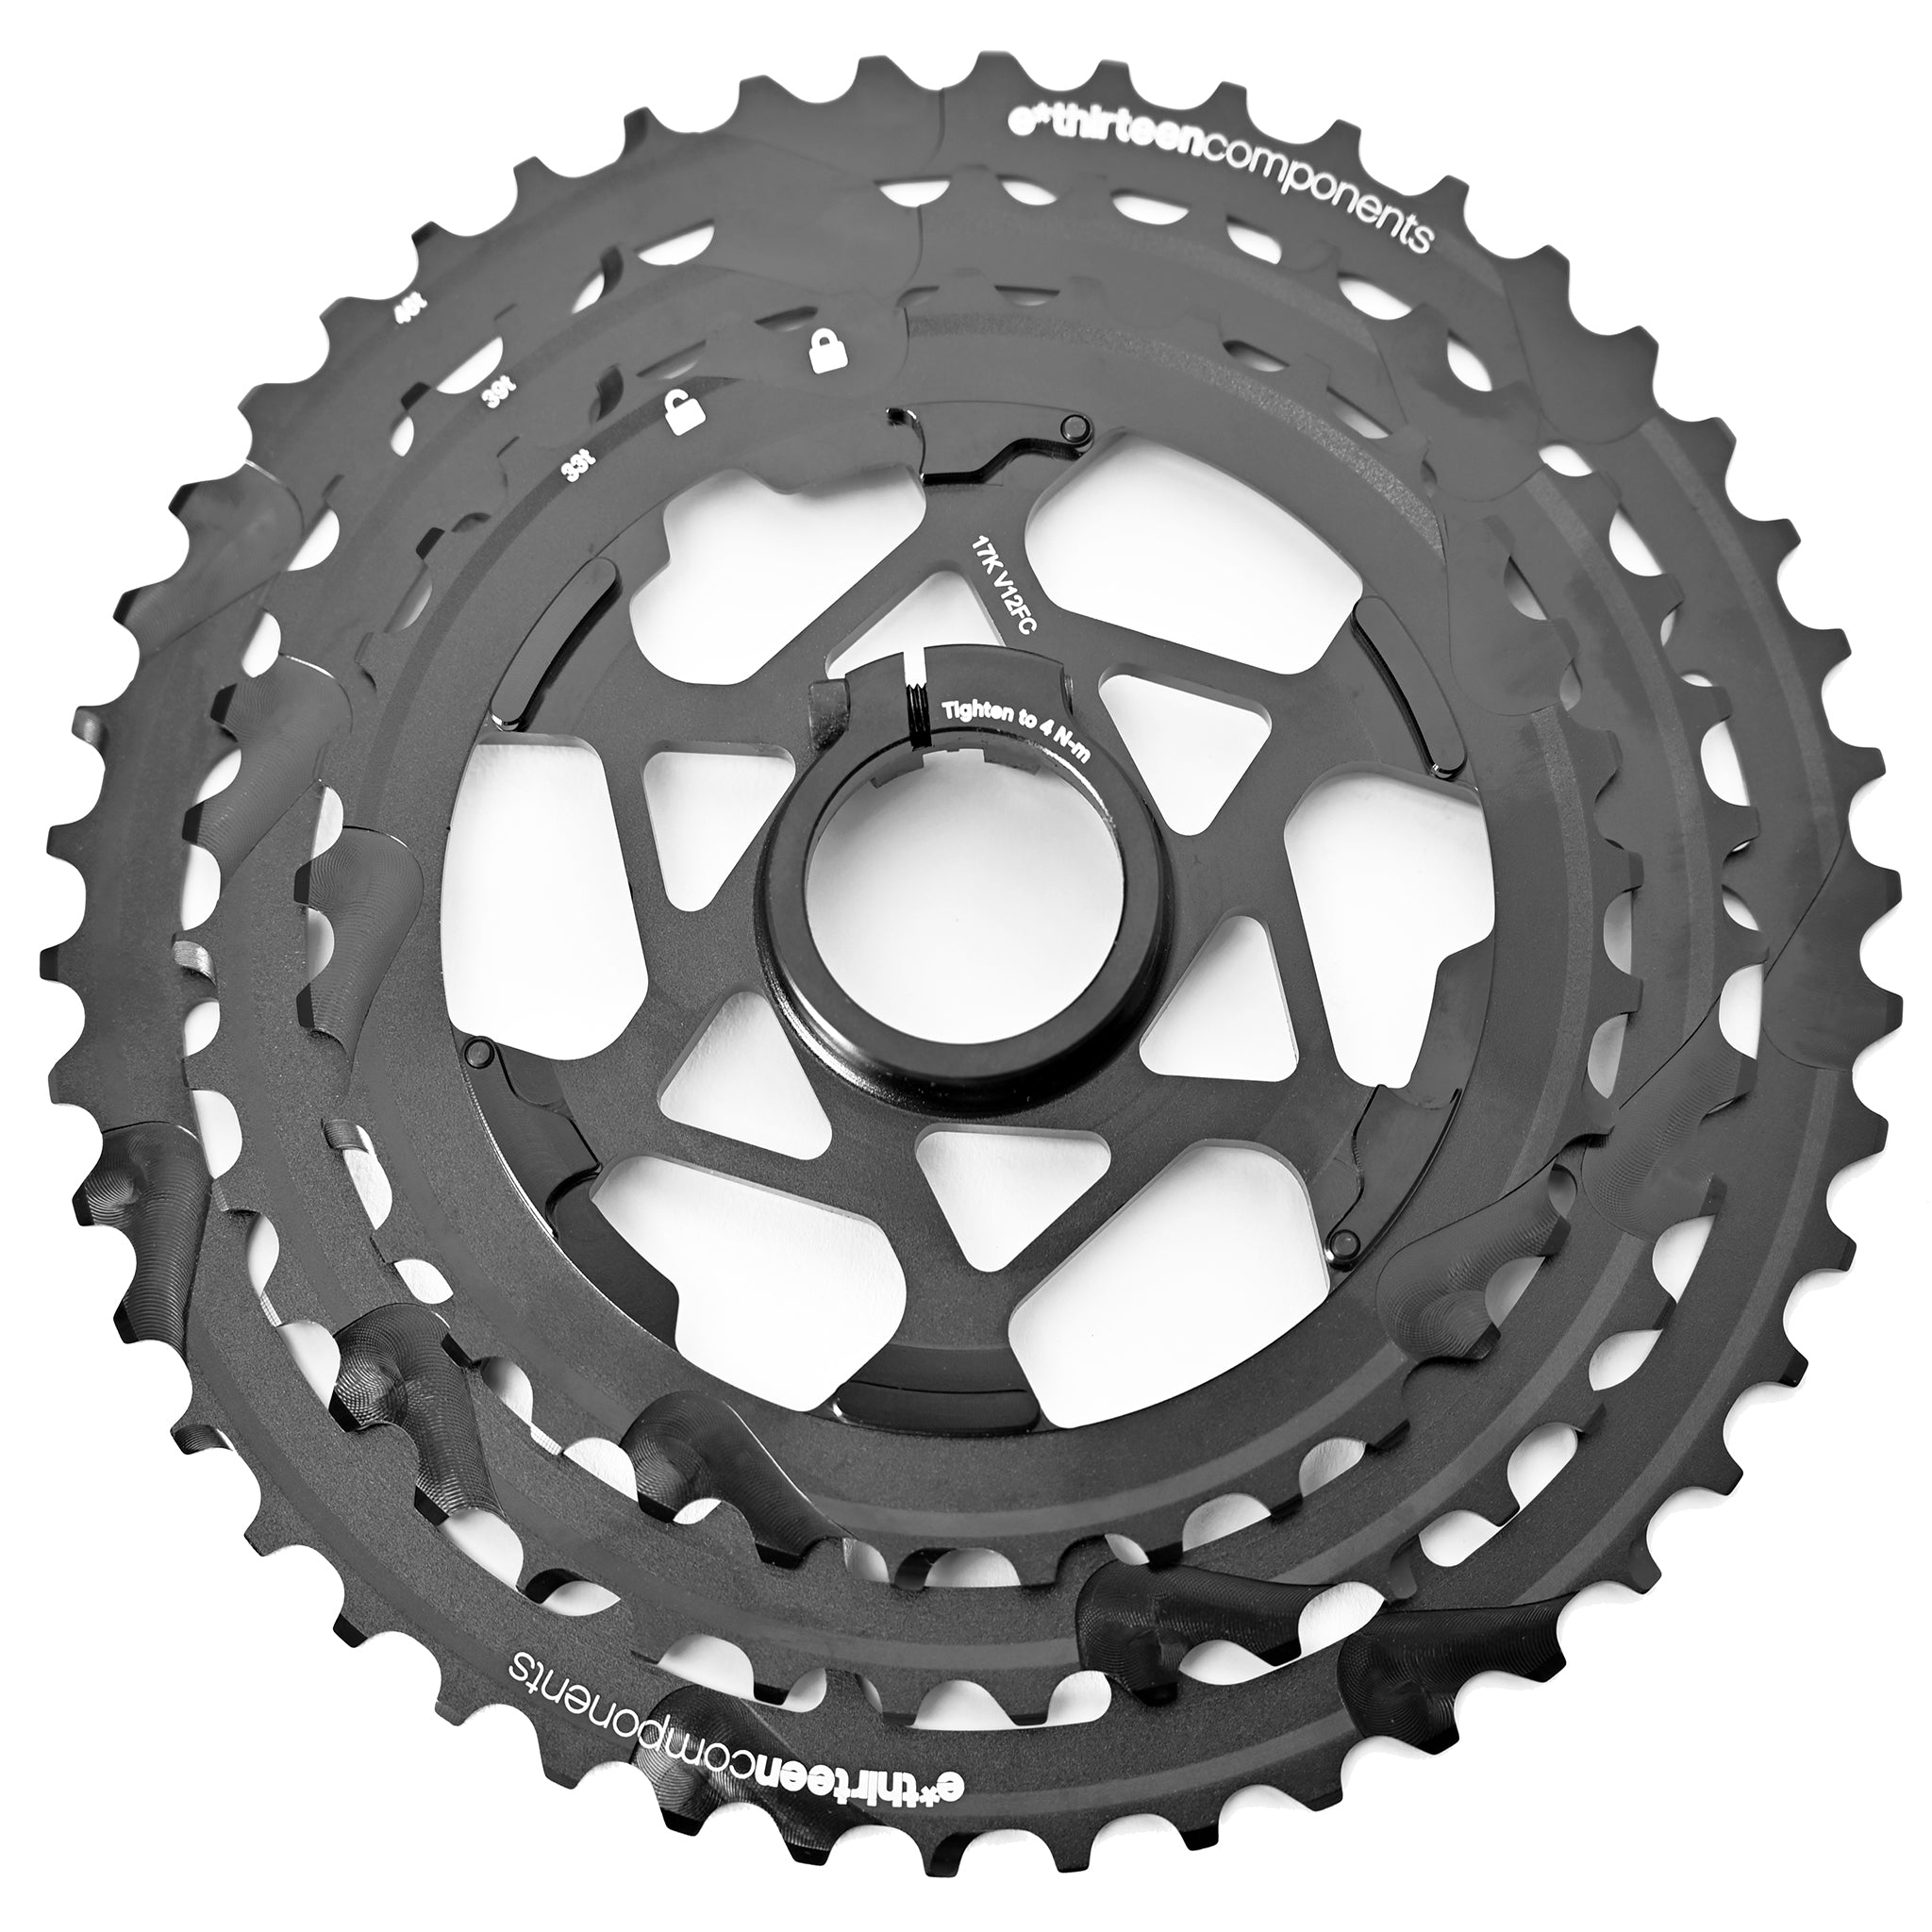 TRS Race Cassette Replacement Parts